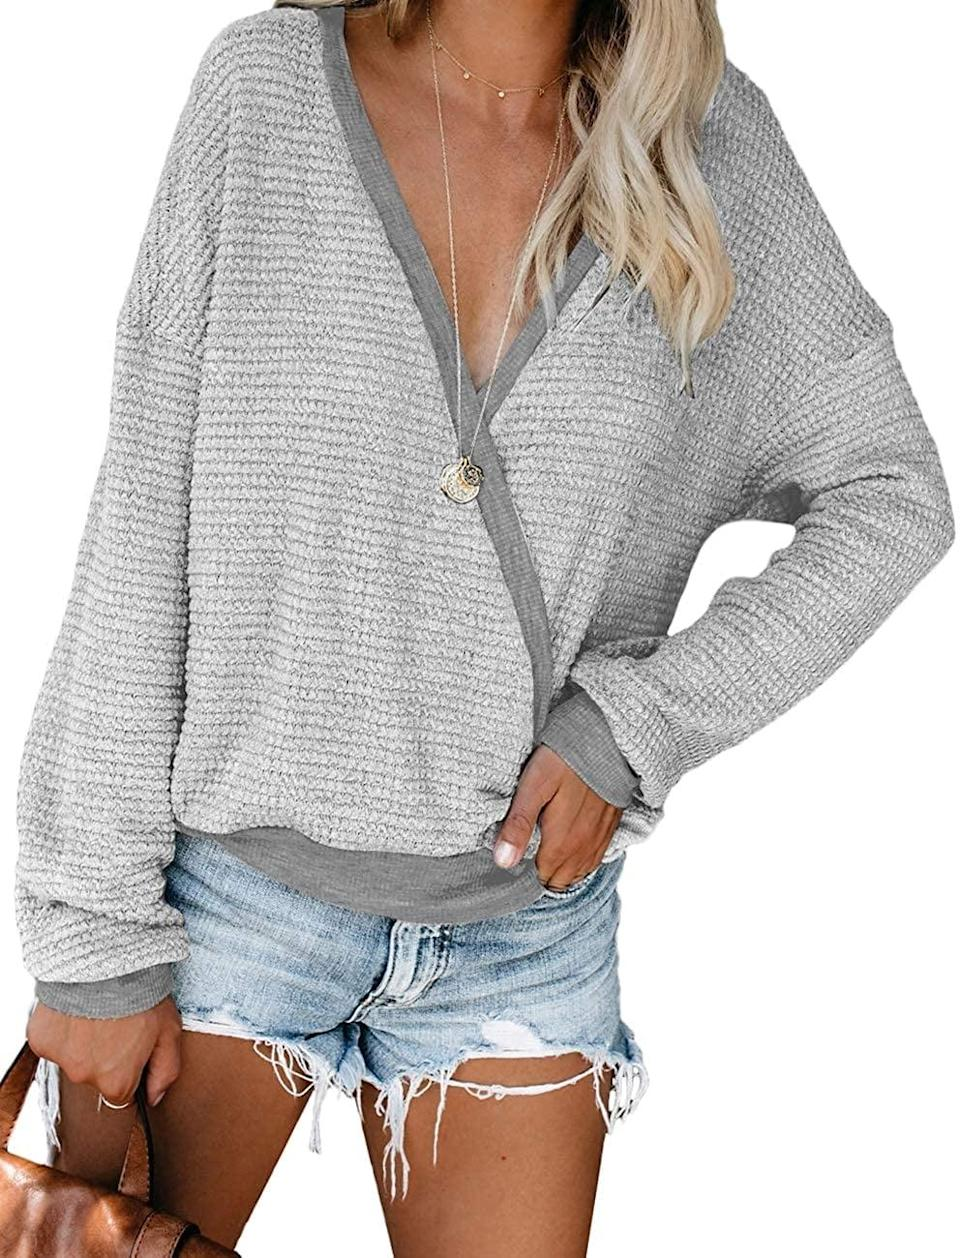 <p><span>NSQTBA V-Neck Sweater</span> ($22, originally $26)</p>